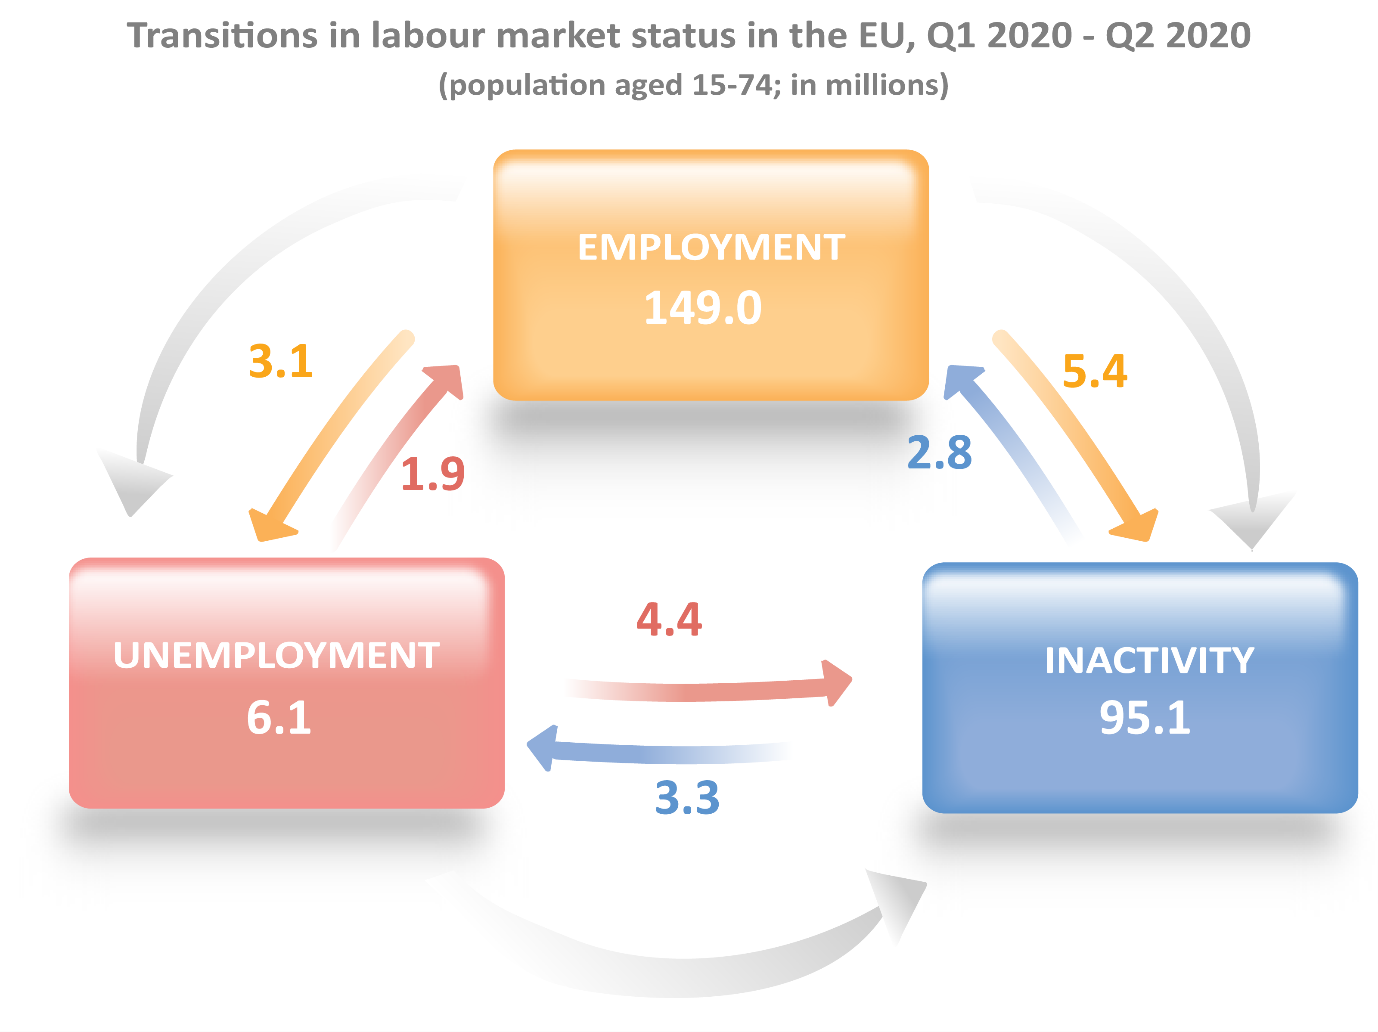 Transitions in labour market status in the EU, Q1 2020-Q2 2020 (population aged 15-74, in millions)